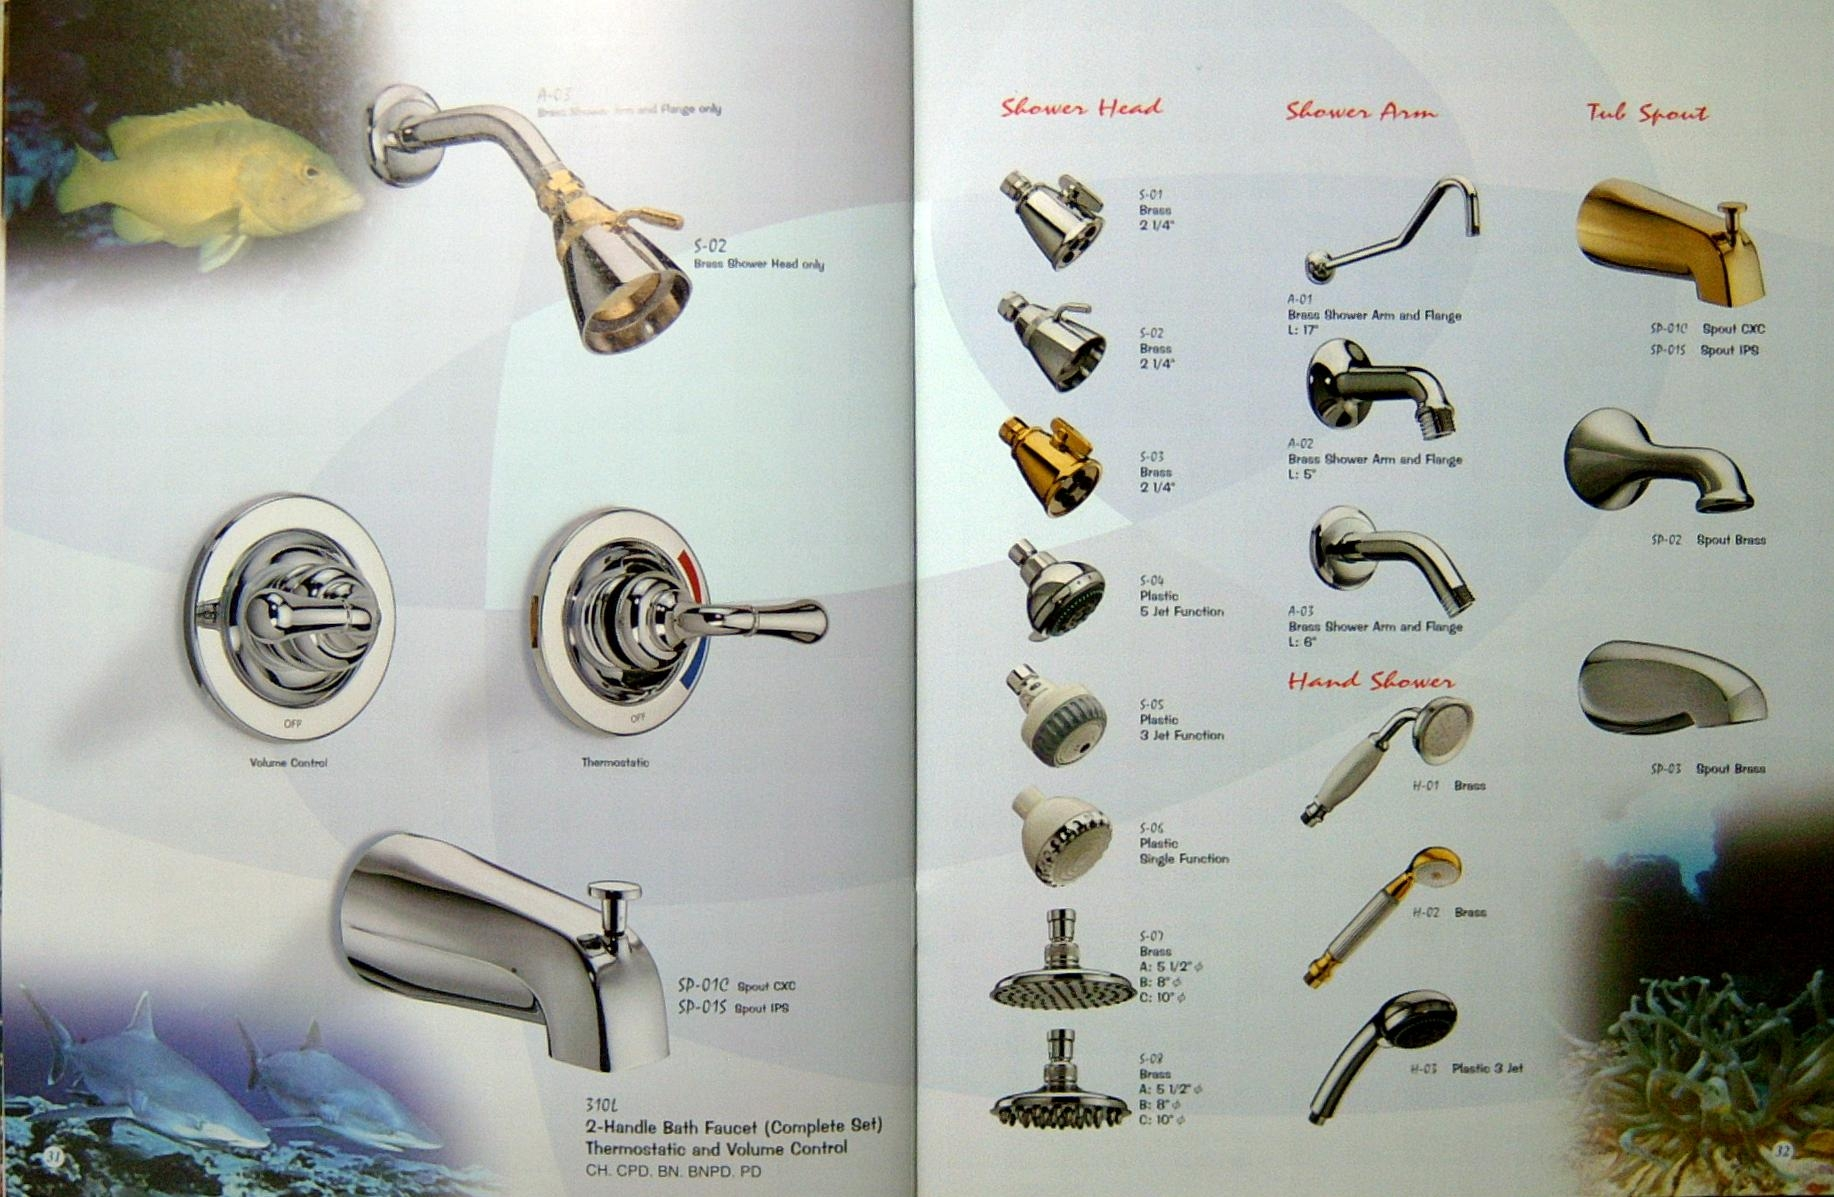 Ideas, types of bathtub shower faucets types of bathtub shower faucets 50 shower faucet valve types contemporary style ceramic valve 1834 x 1197  .